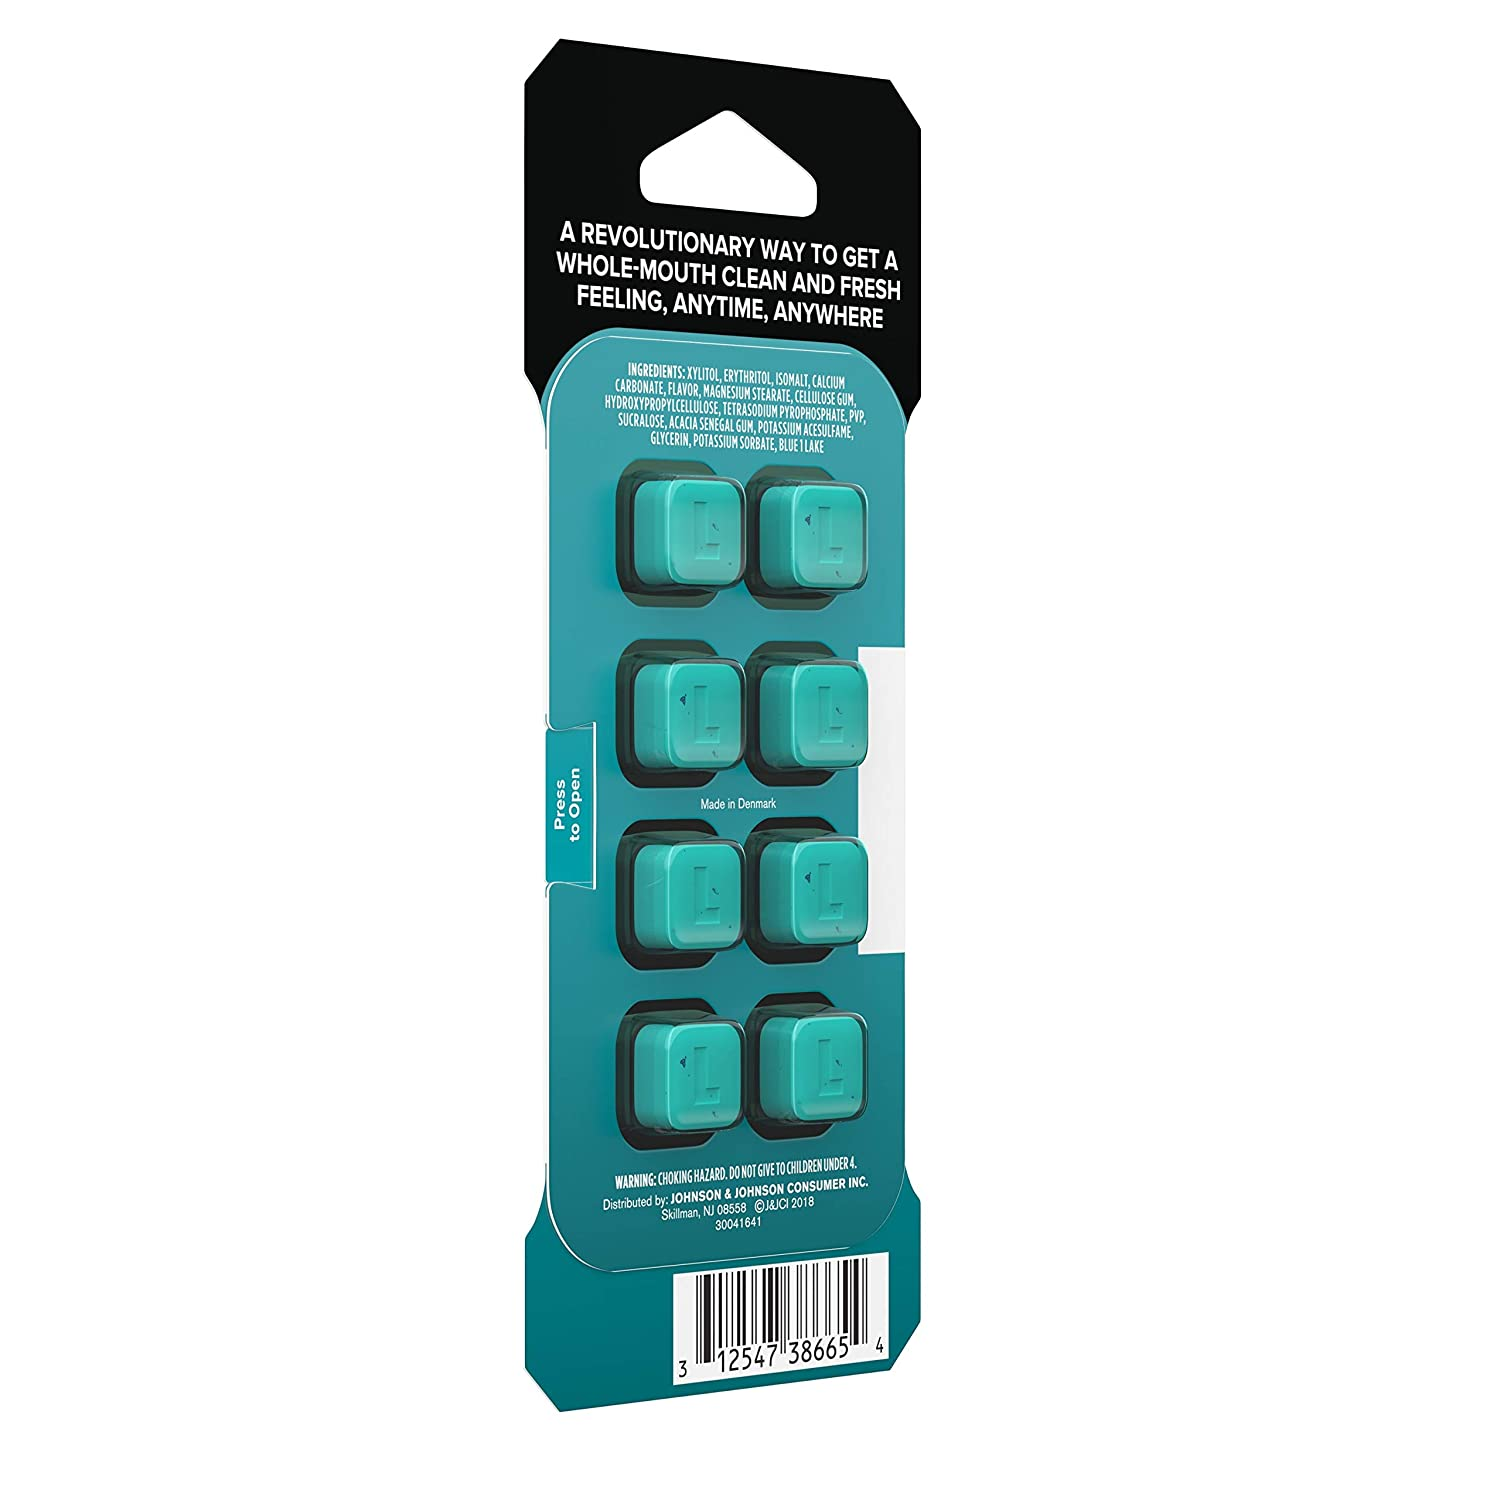 Listerine Ready Tabs Chewable Tablets Sugar Alcohol Free Clean Mint Flavor 8 Ct